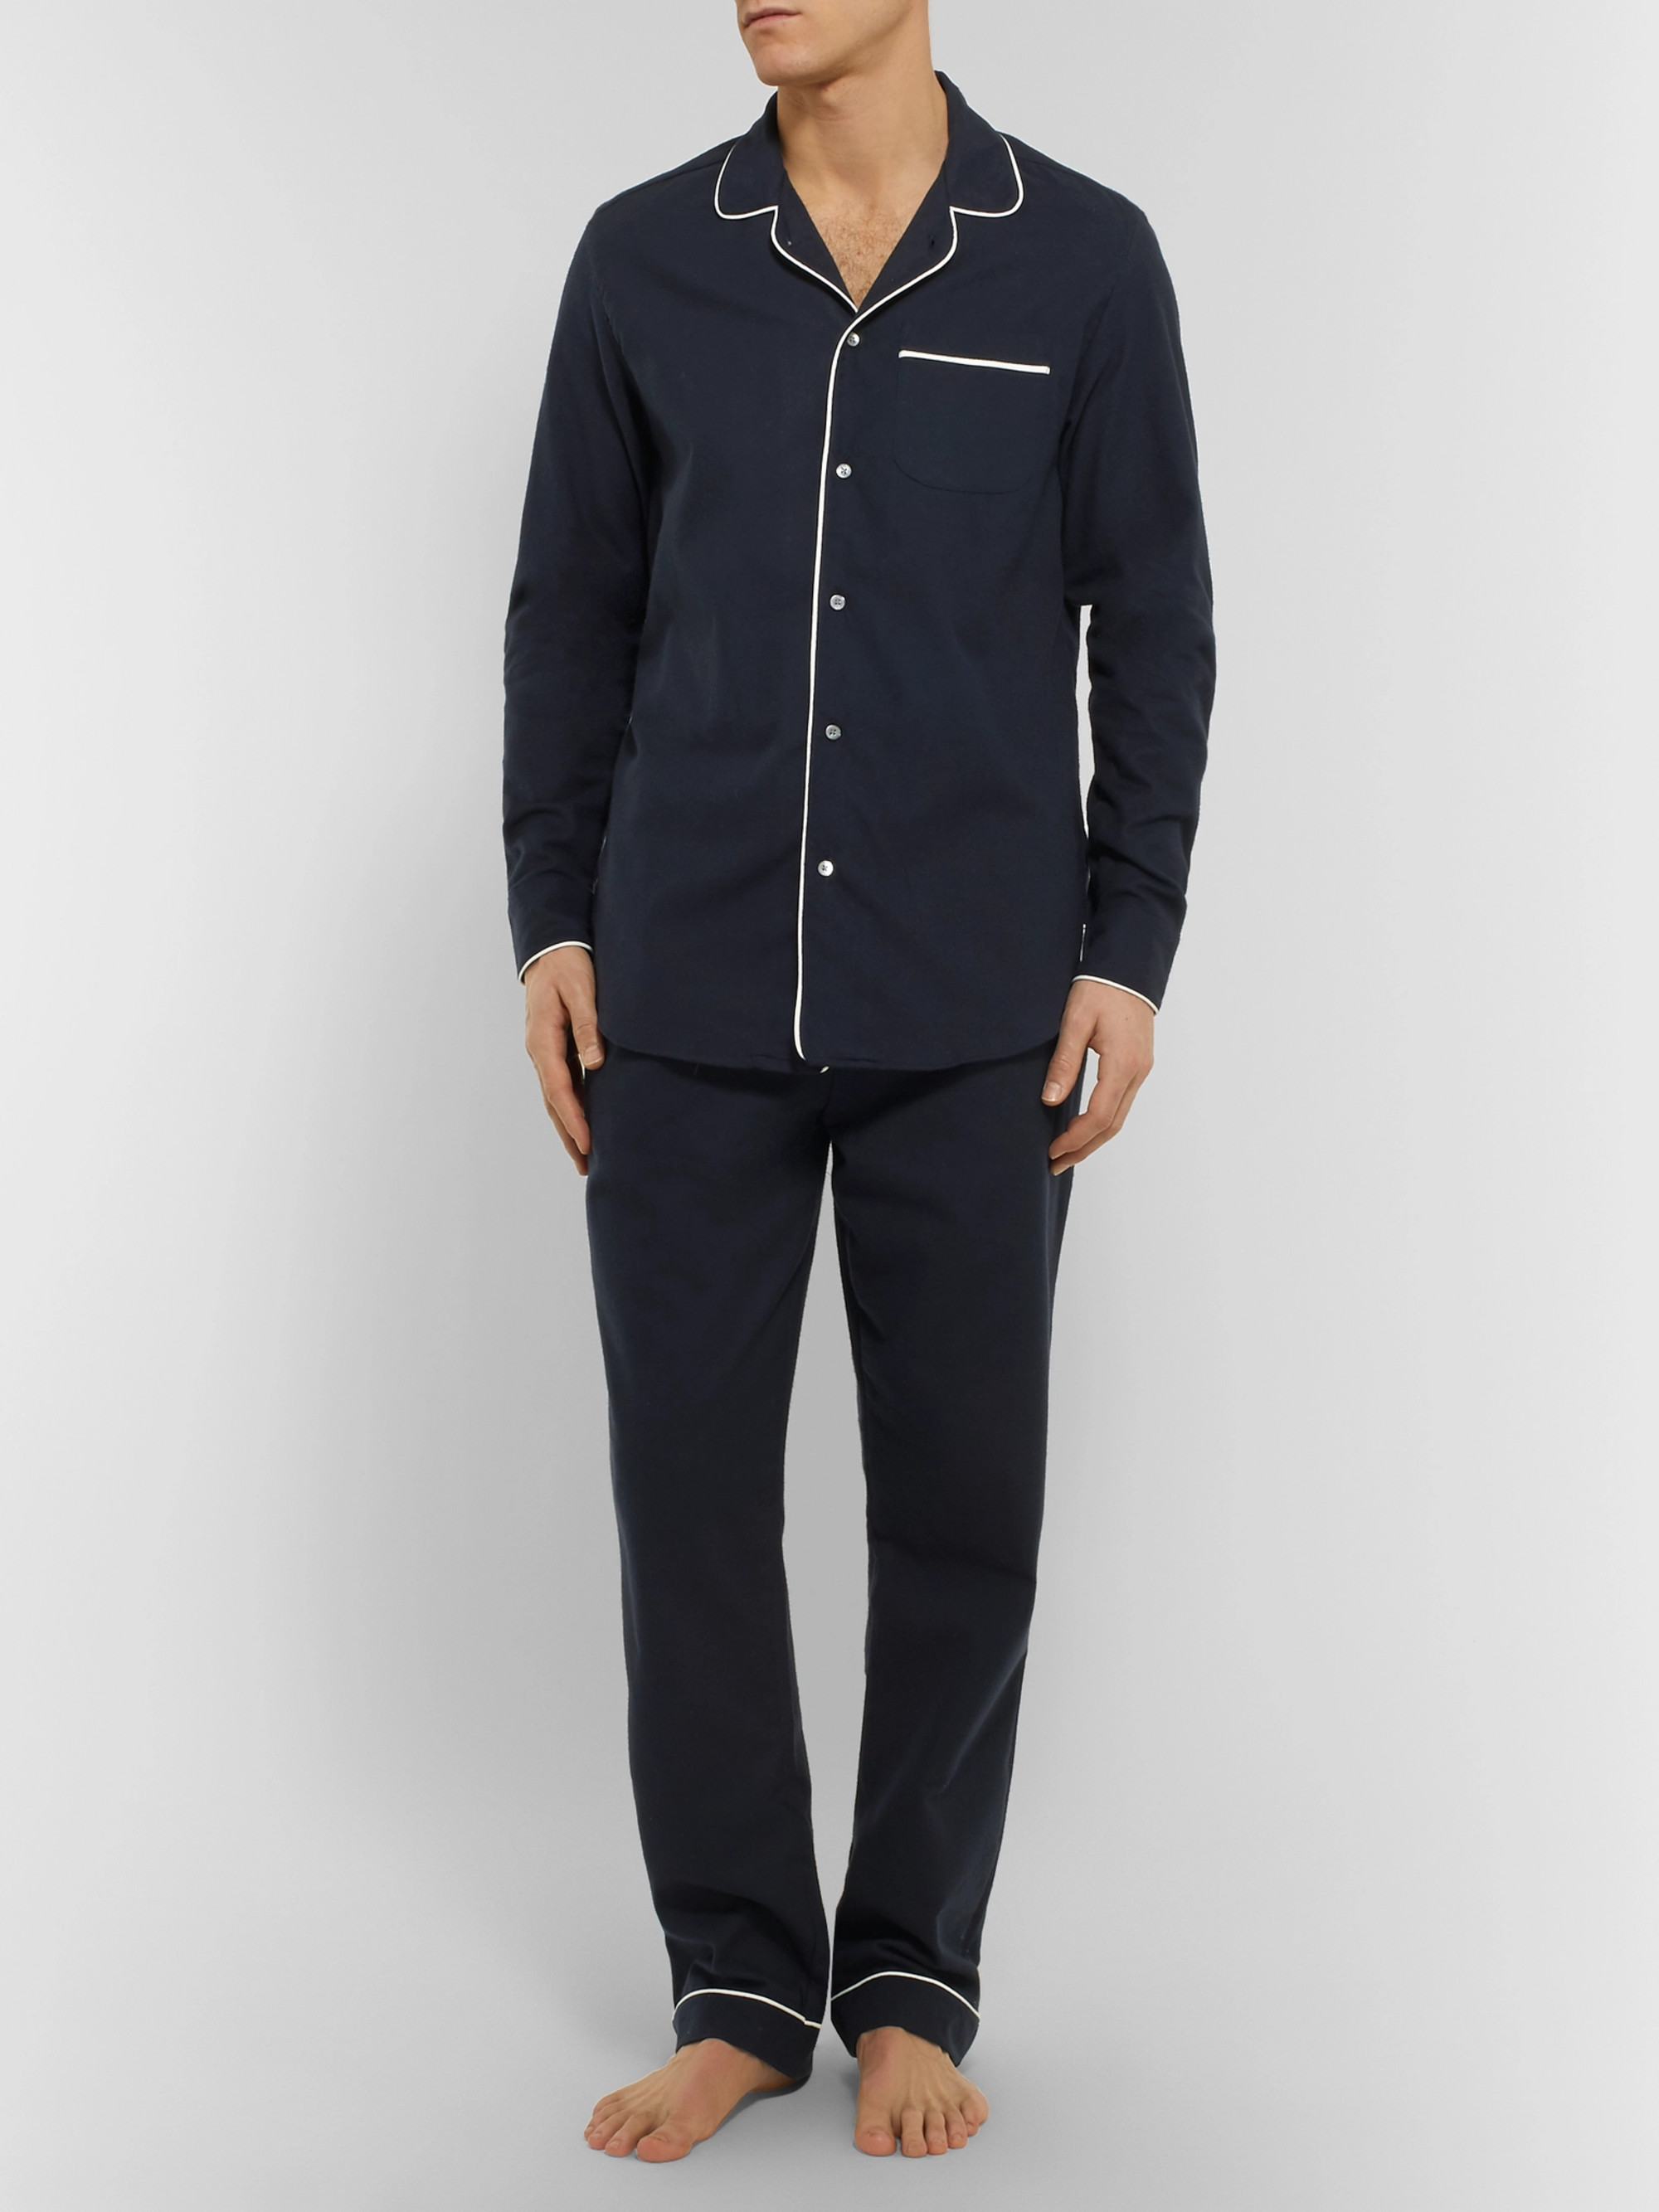 Desmond & Dempsey Brushed-Cotton Twill Pyjama Trousers